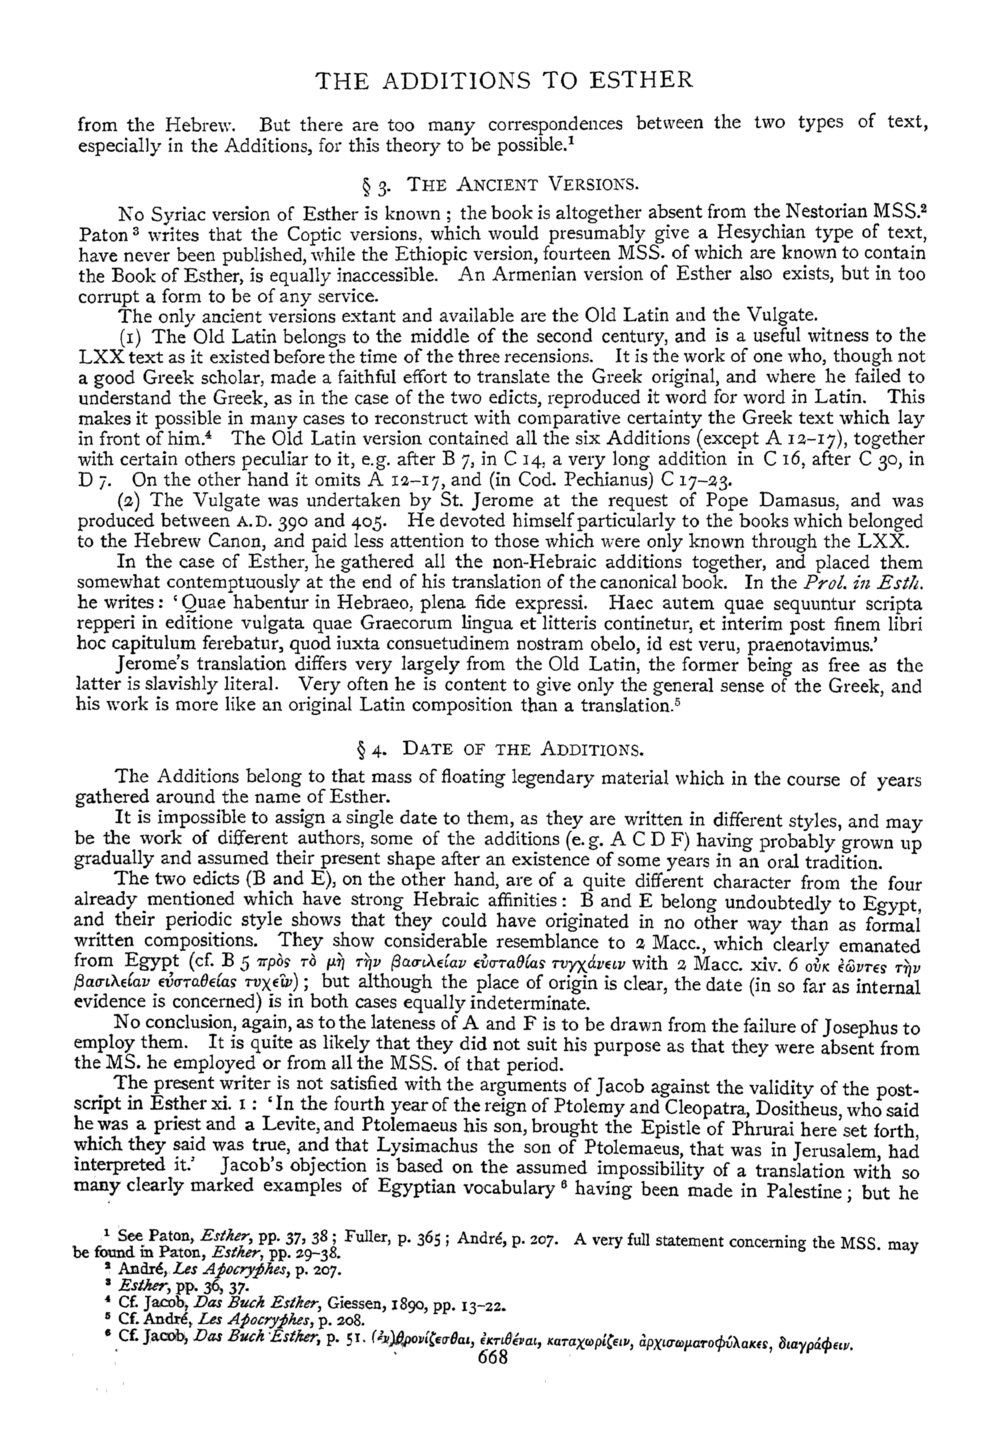 Image of page 668